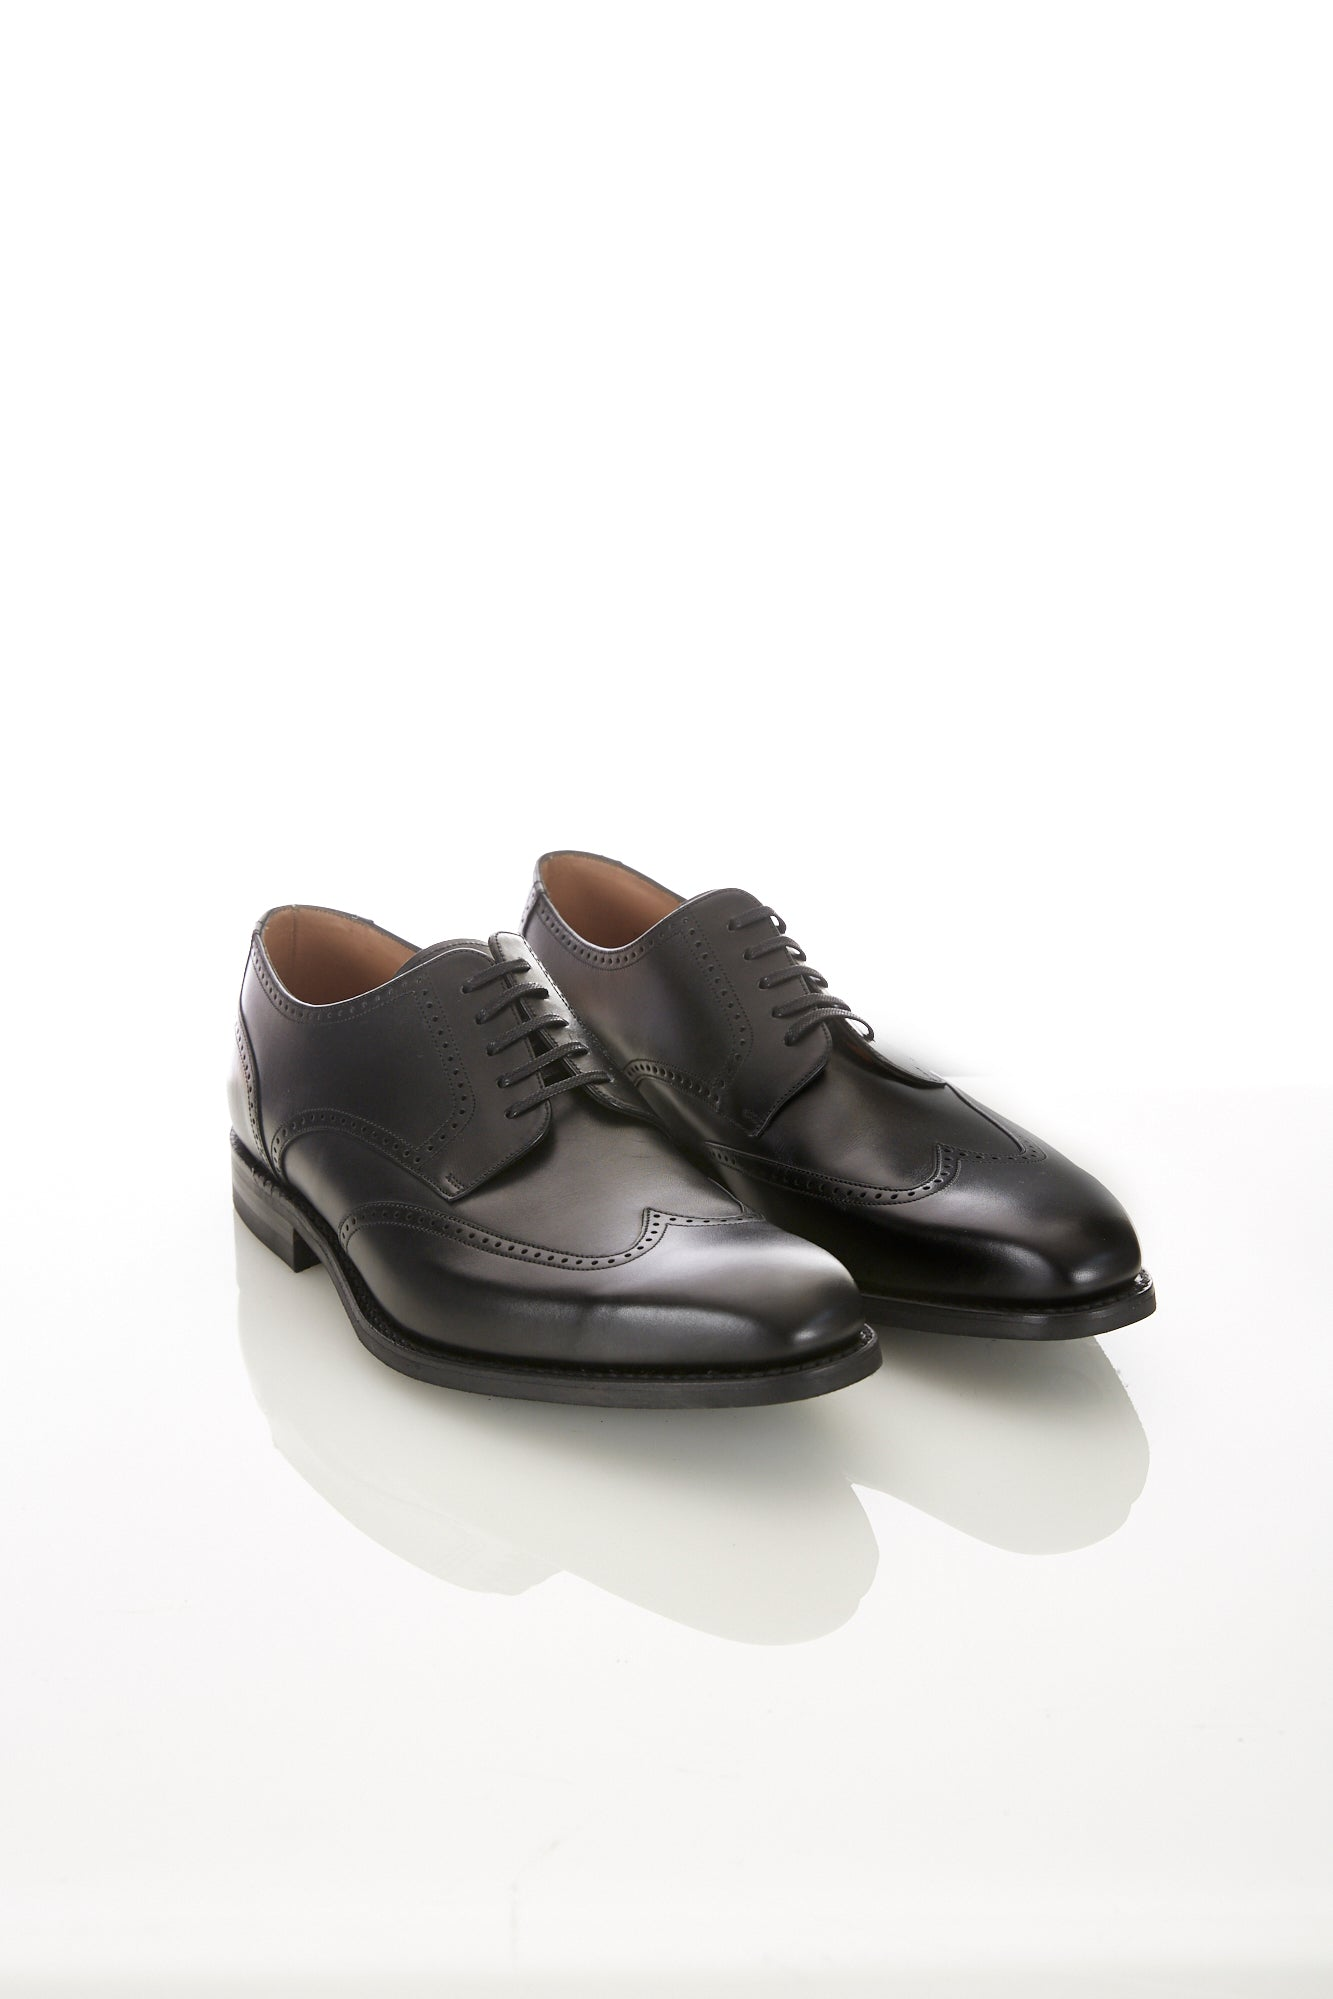 Loake 1880 Eden Black Wingtip Shoe - Shoes - Loake - LALONDE's